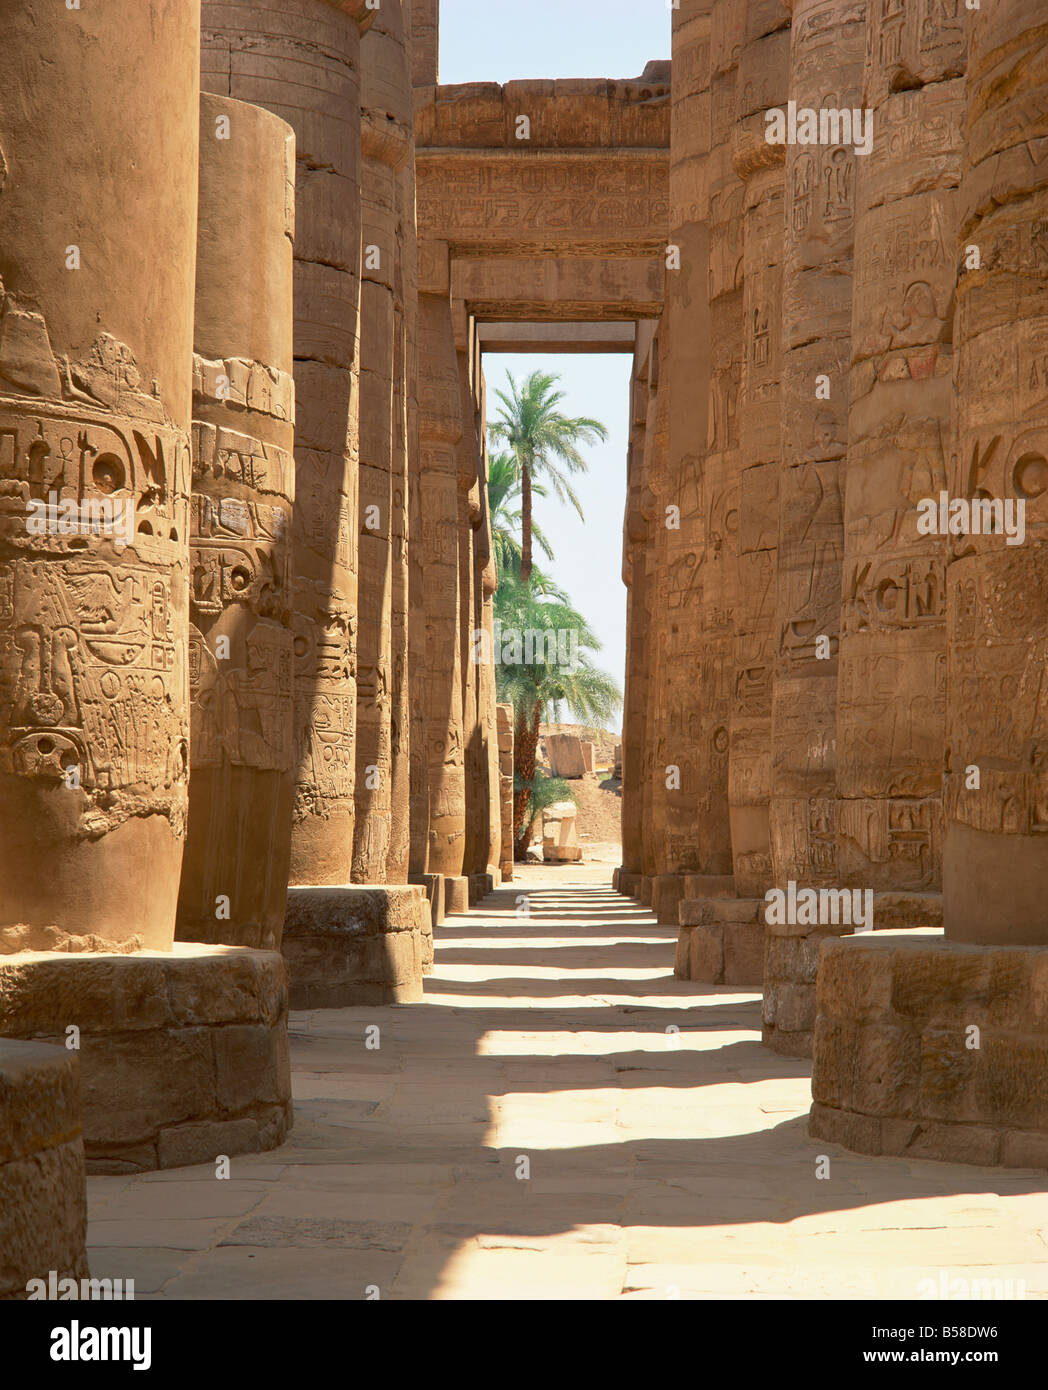 Columns with hieroglyphs in the Great Hypostyle Hall Temple of Karnak Thebes Egypt G Hellier - Stock Image